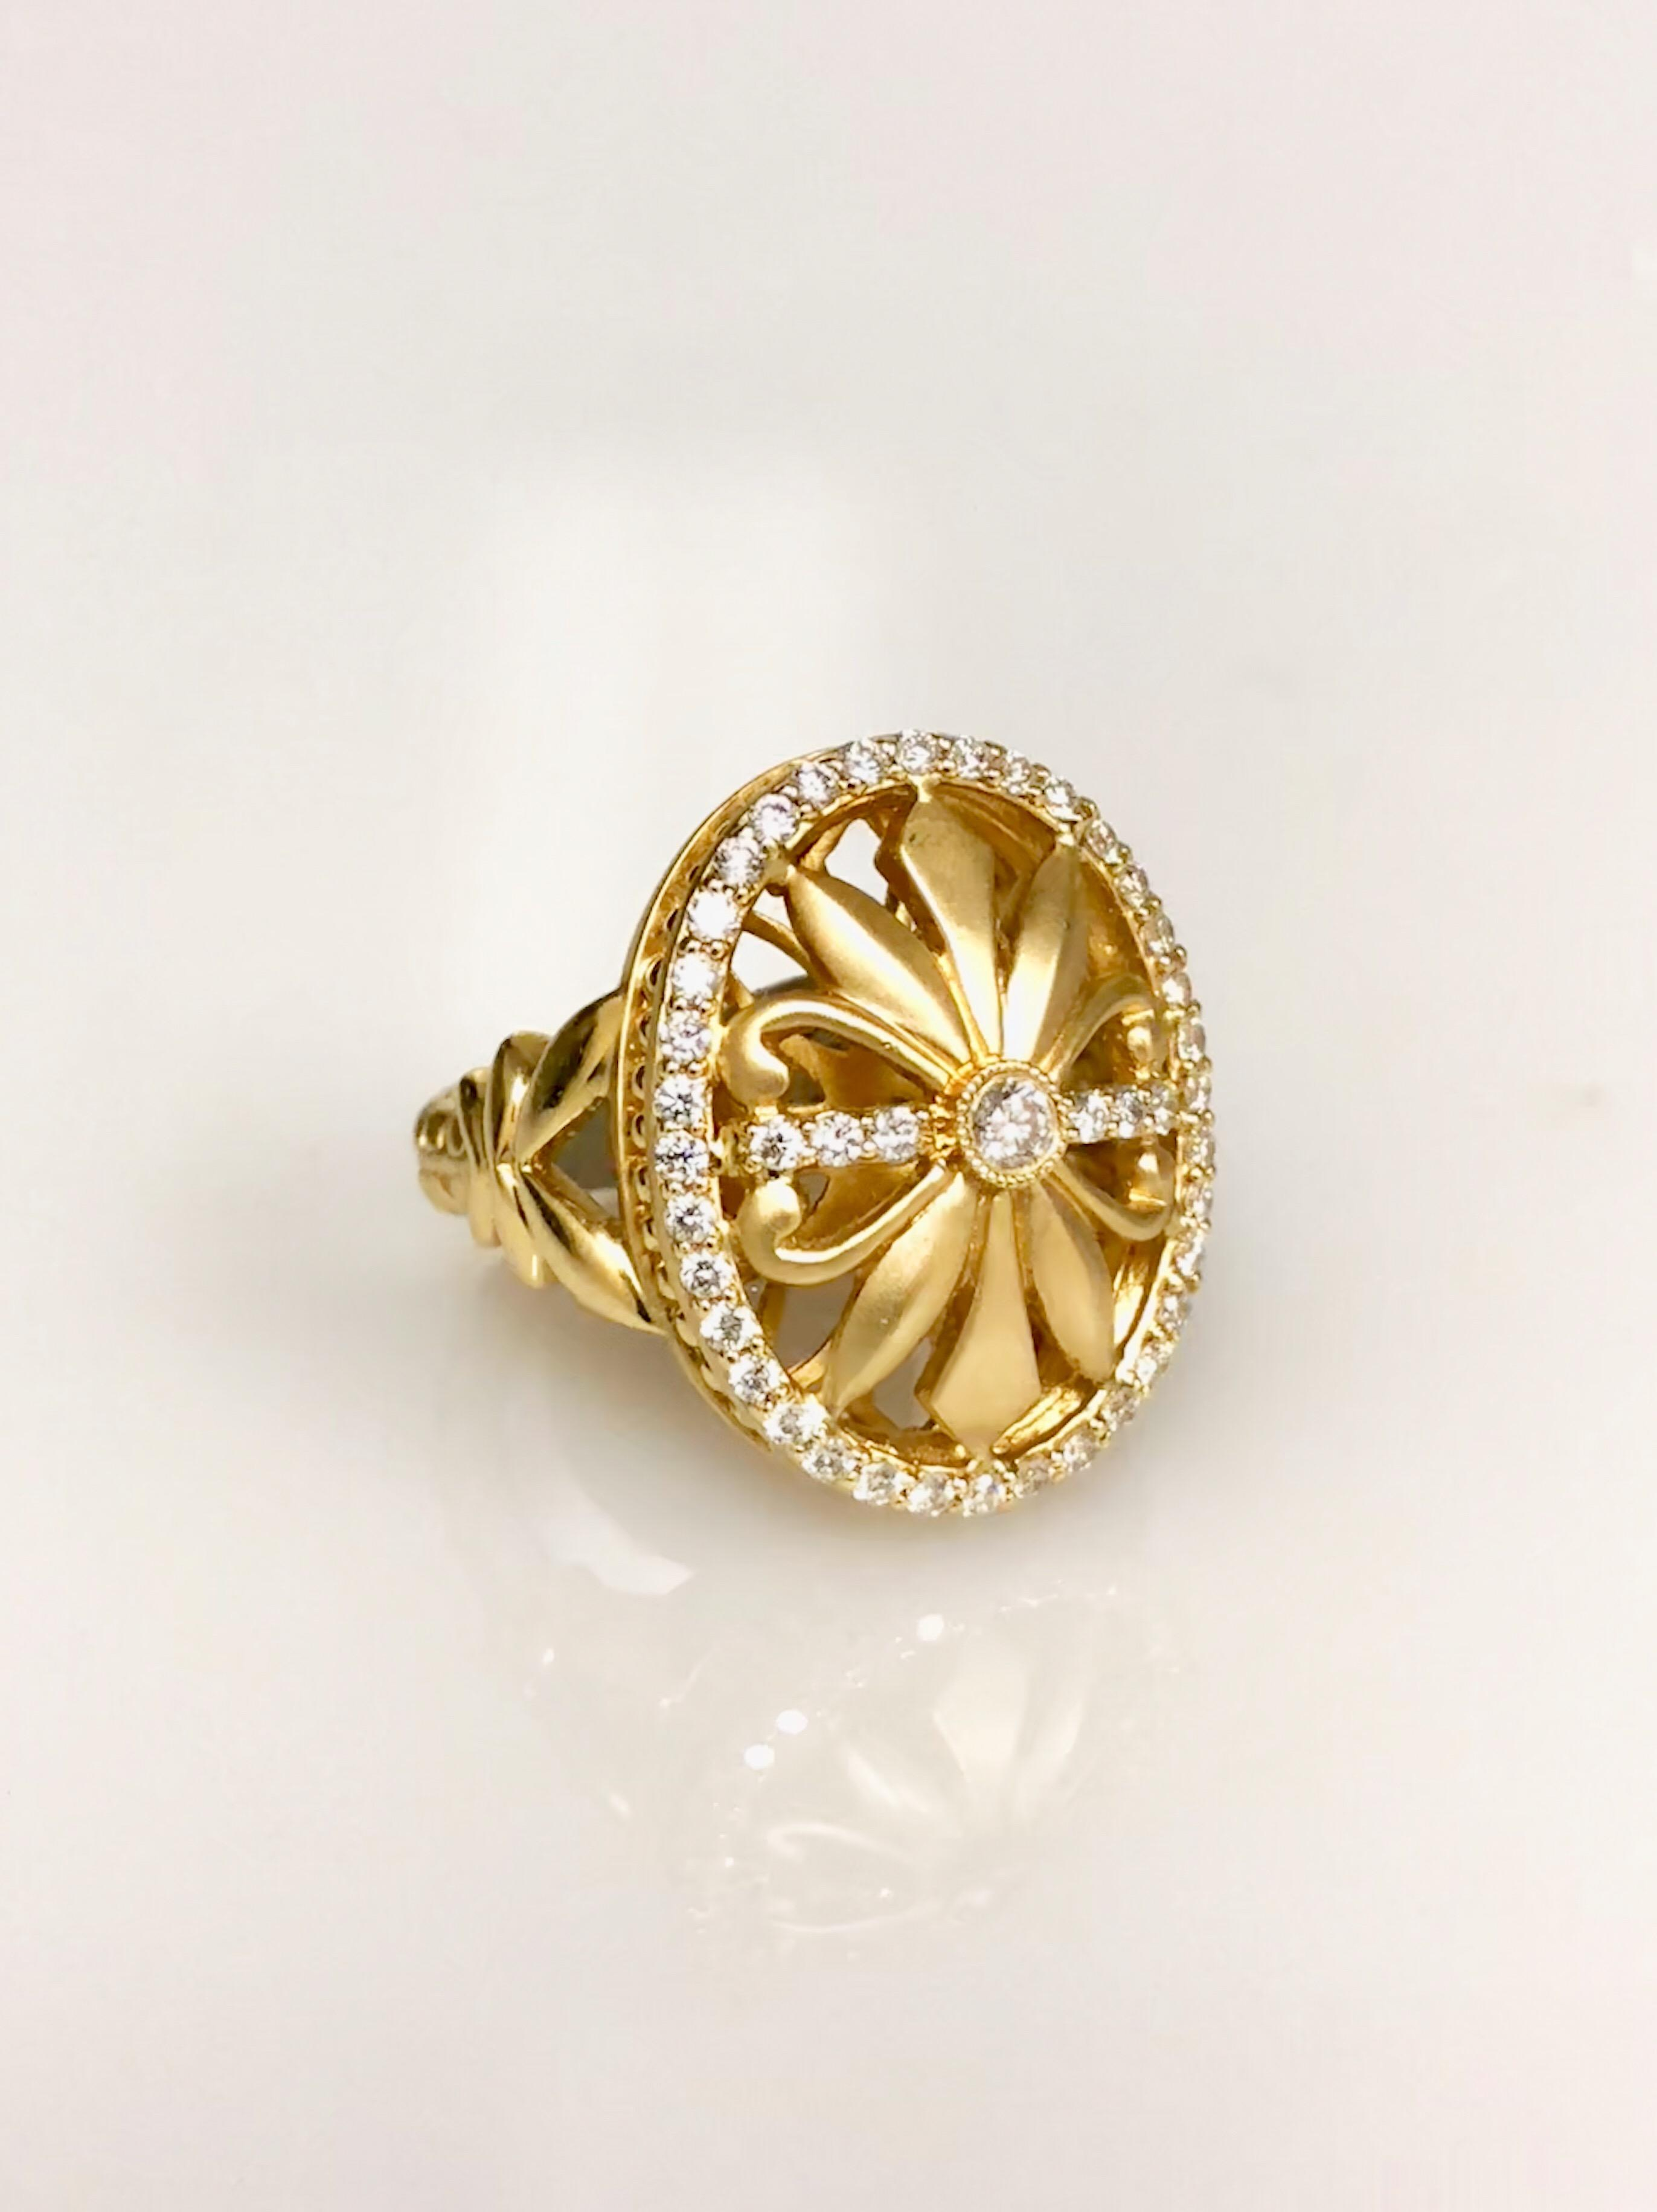 M. A. Laurie Jewelers image 1